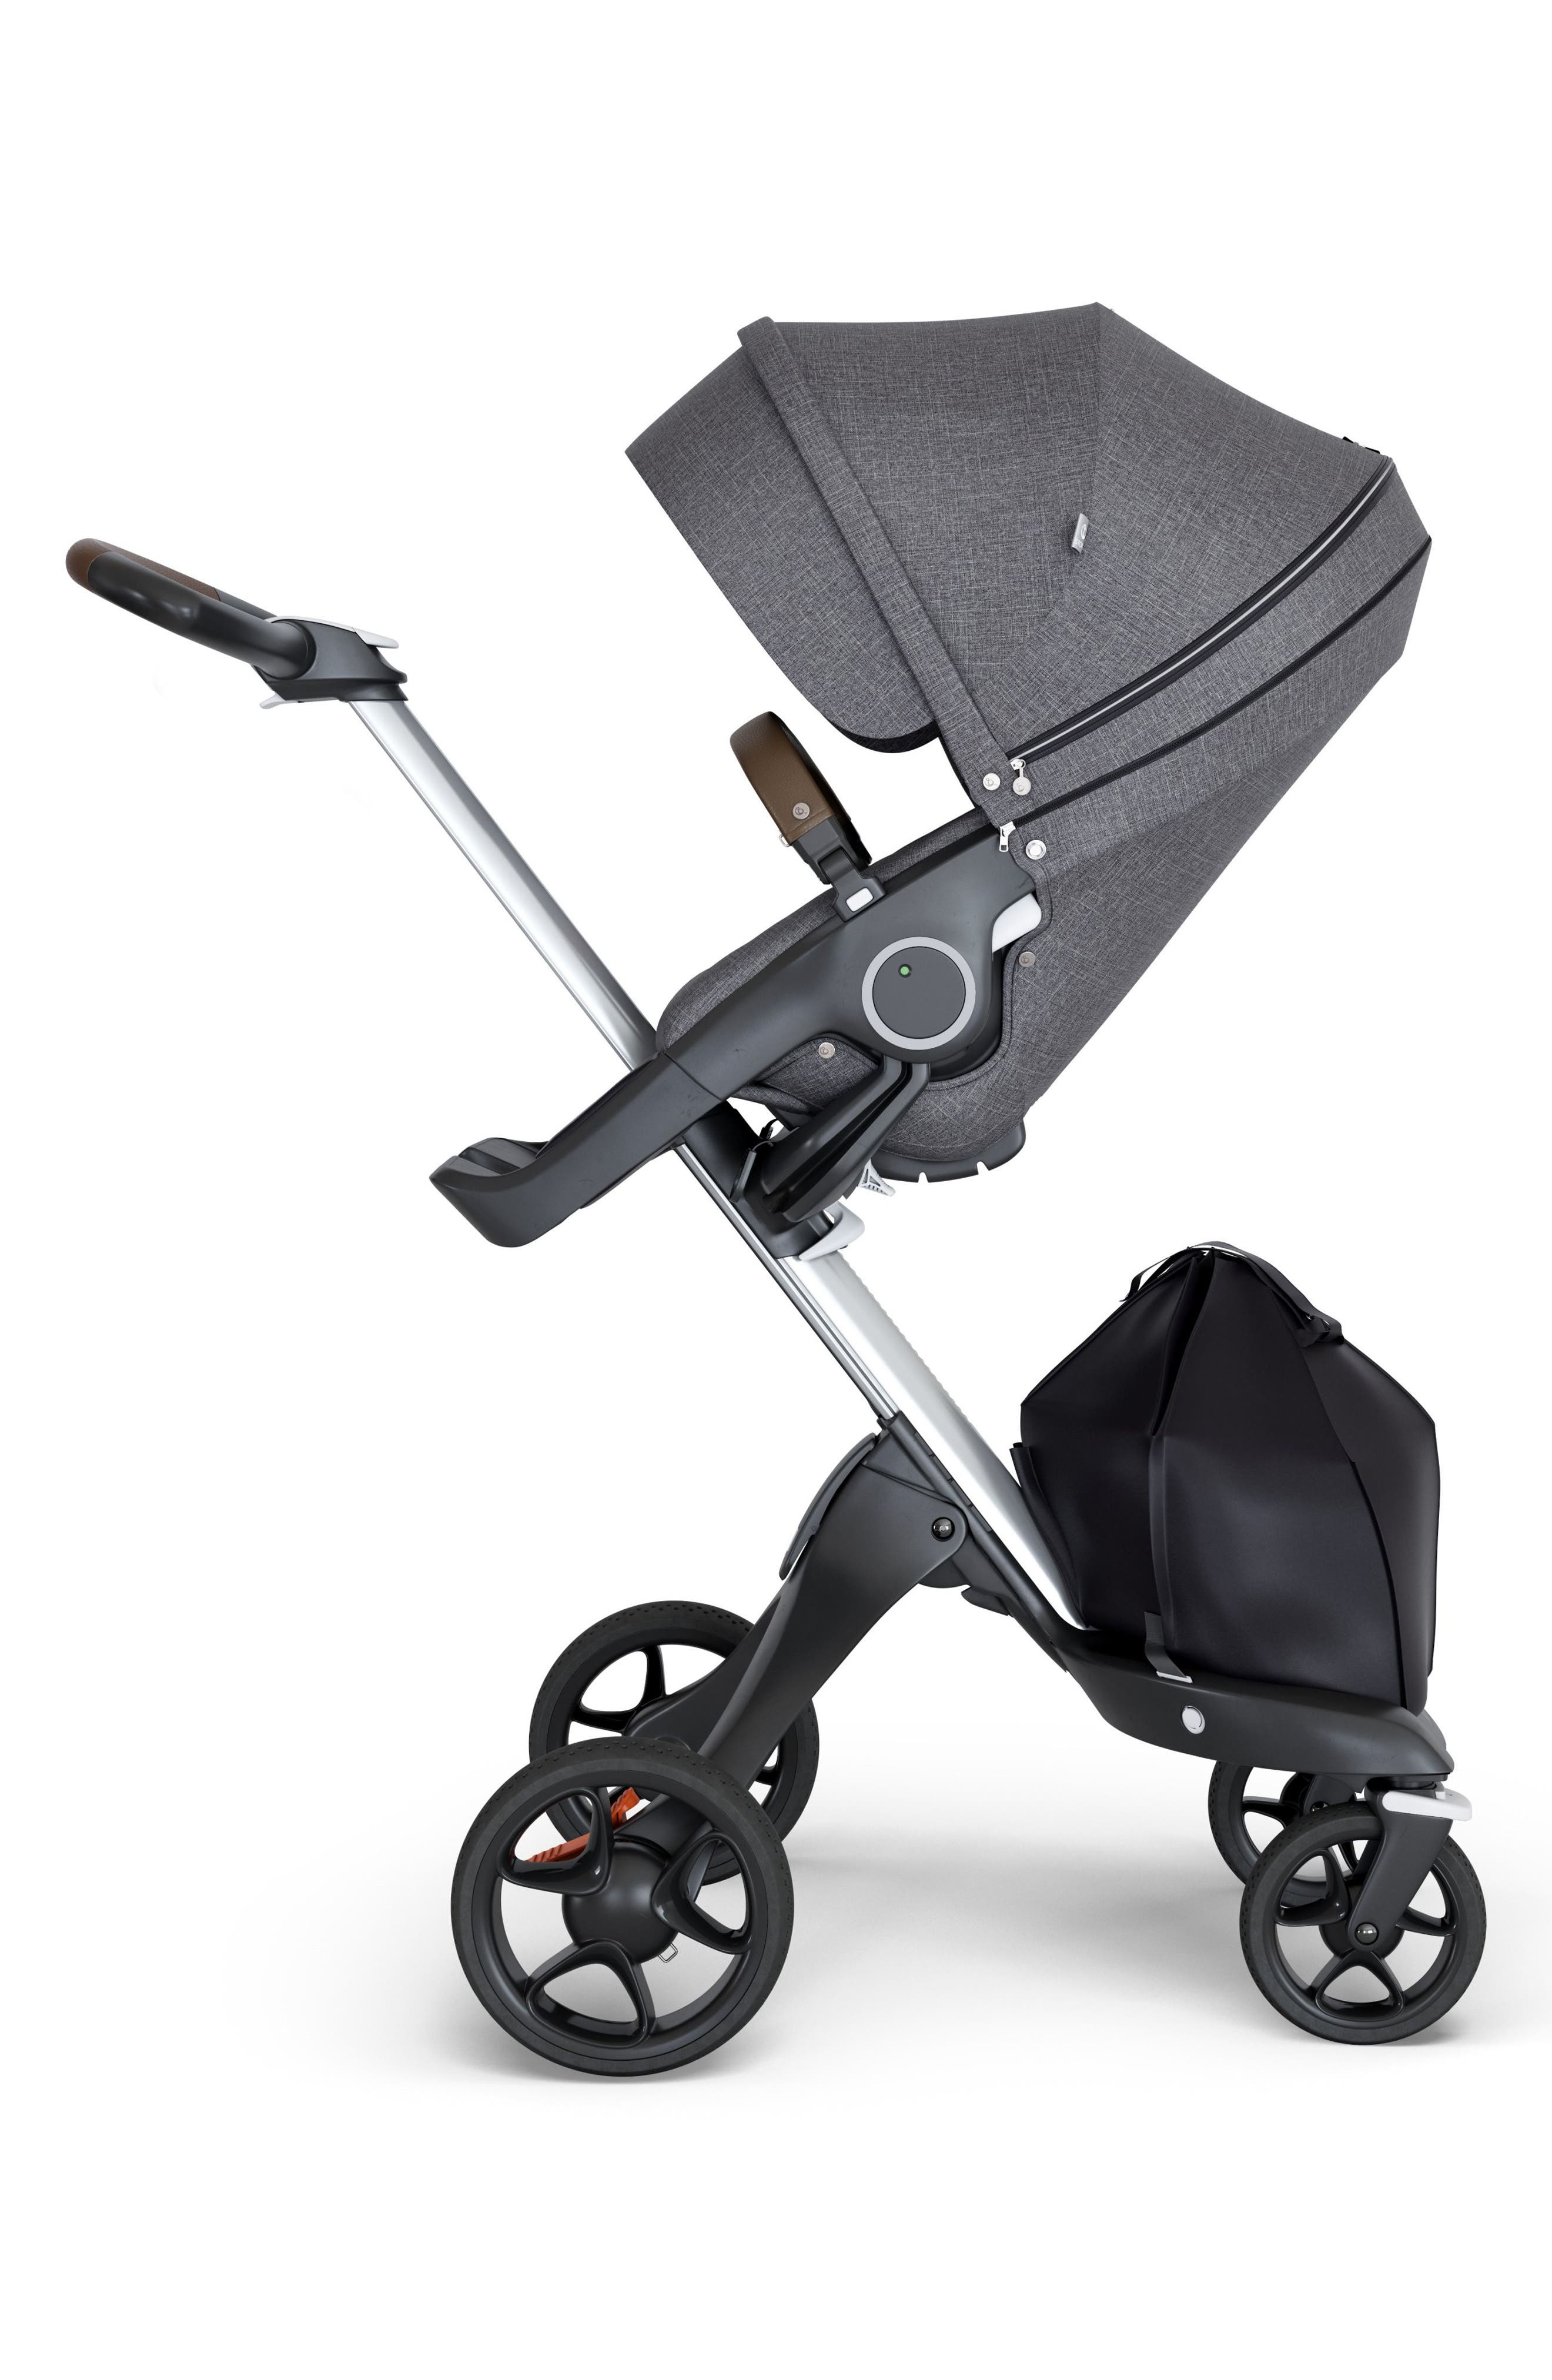 STOKKE, Xplory<sup>®</sup> Silver Chassis Stroller, Main thumbnail 1, color, 001